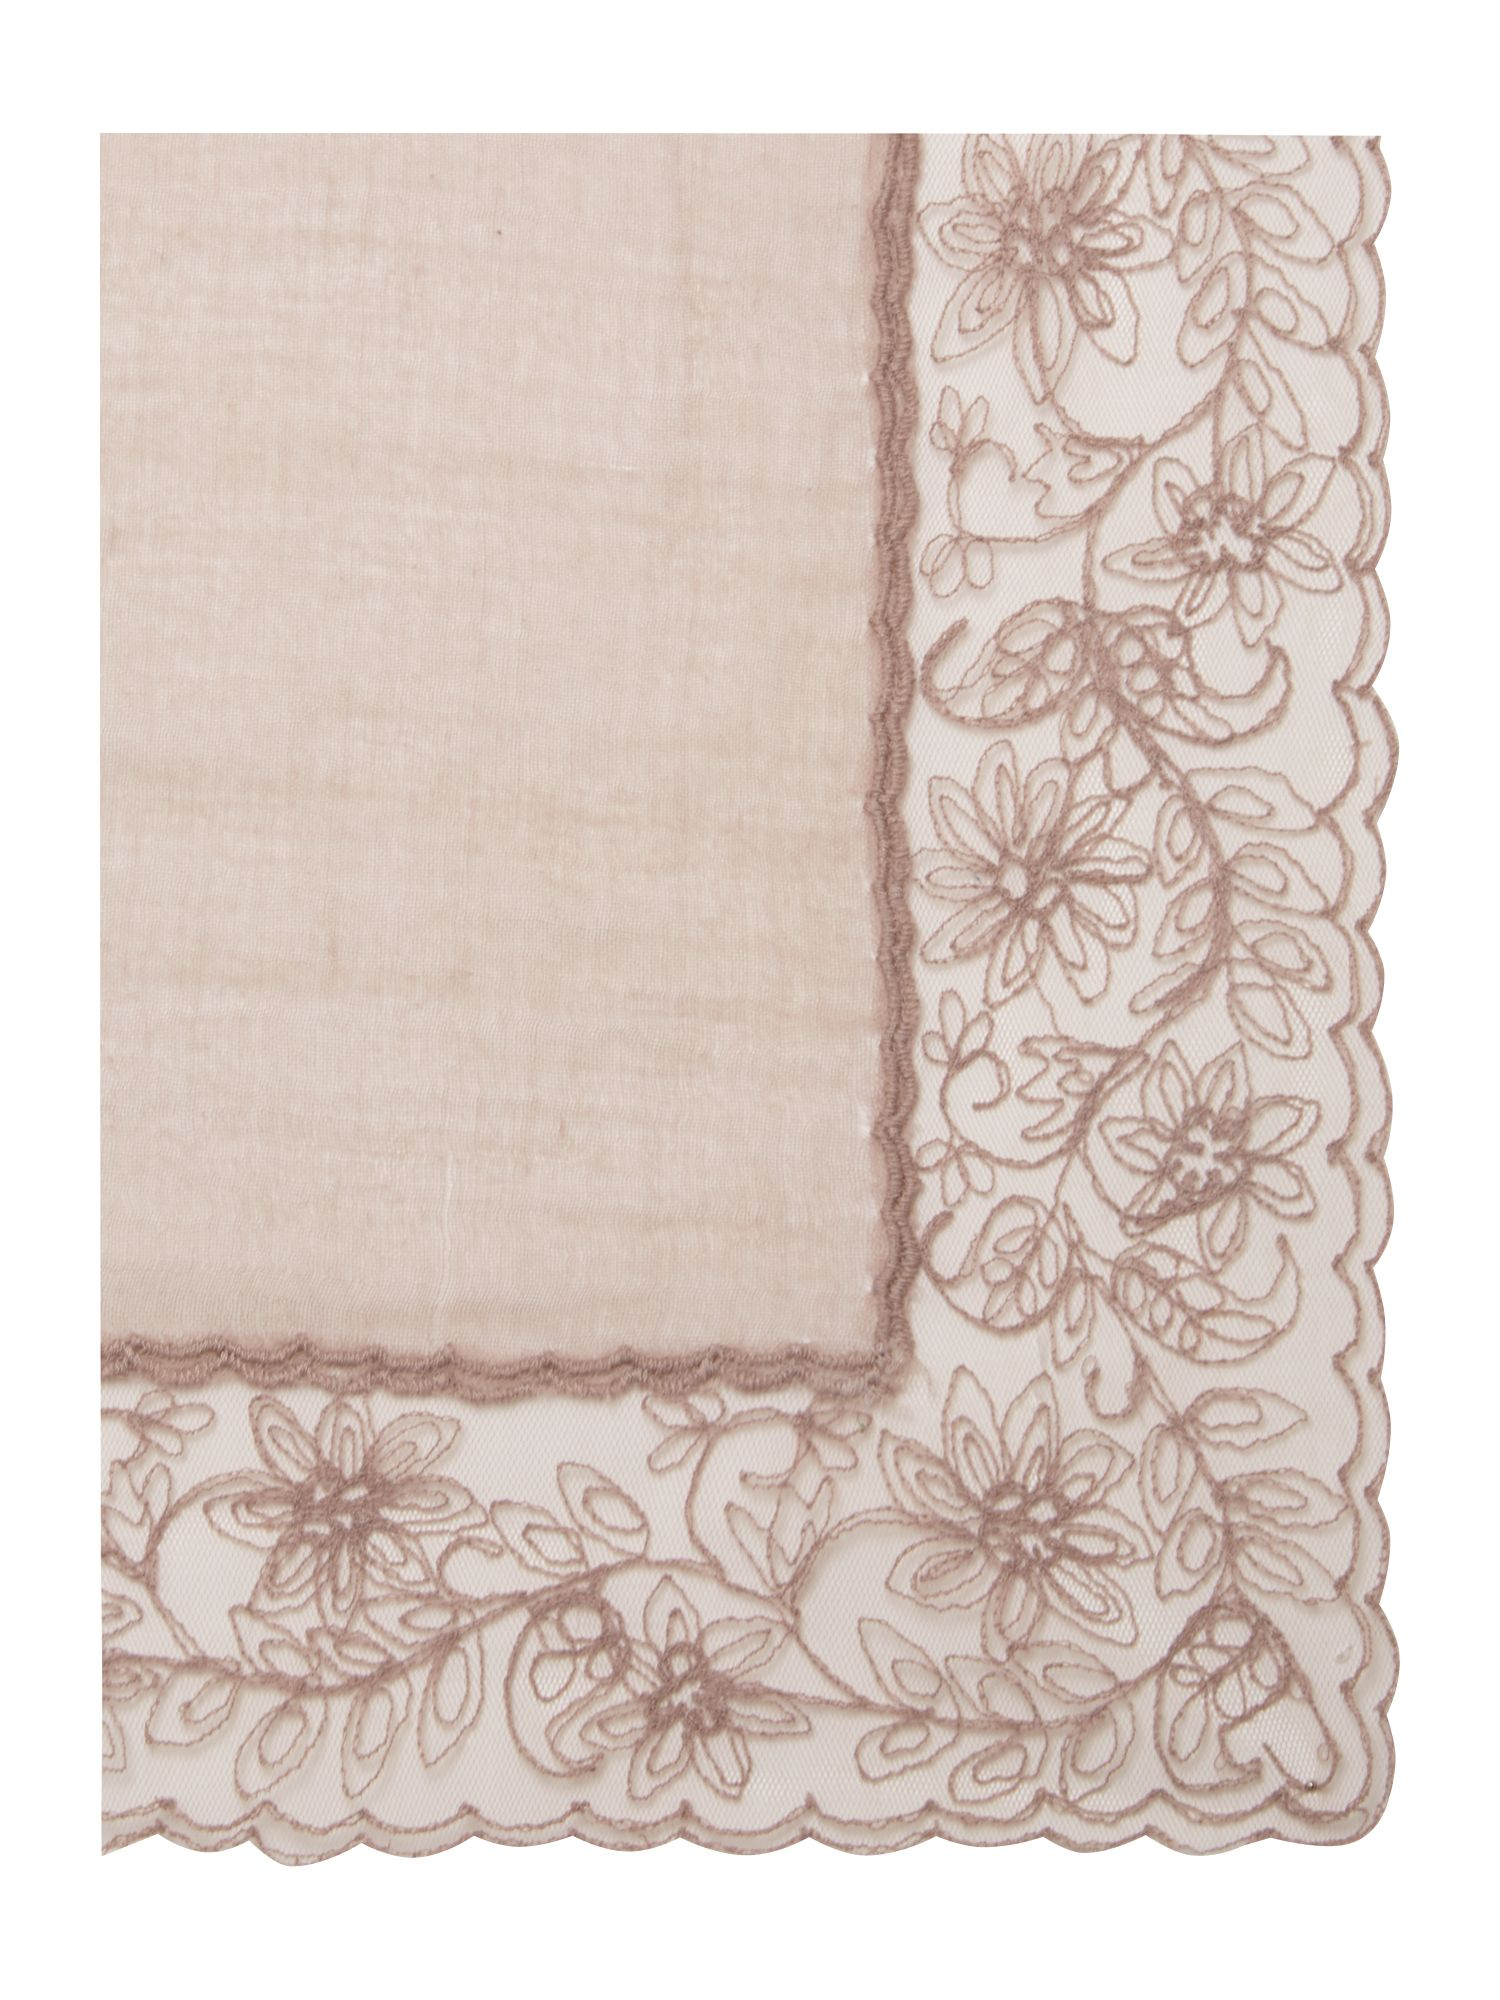 Vocio scarf with lace detail